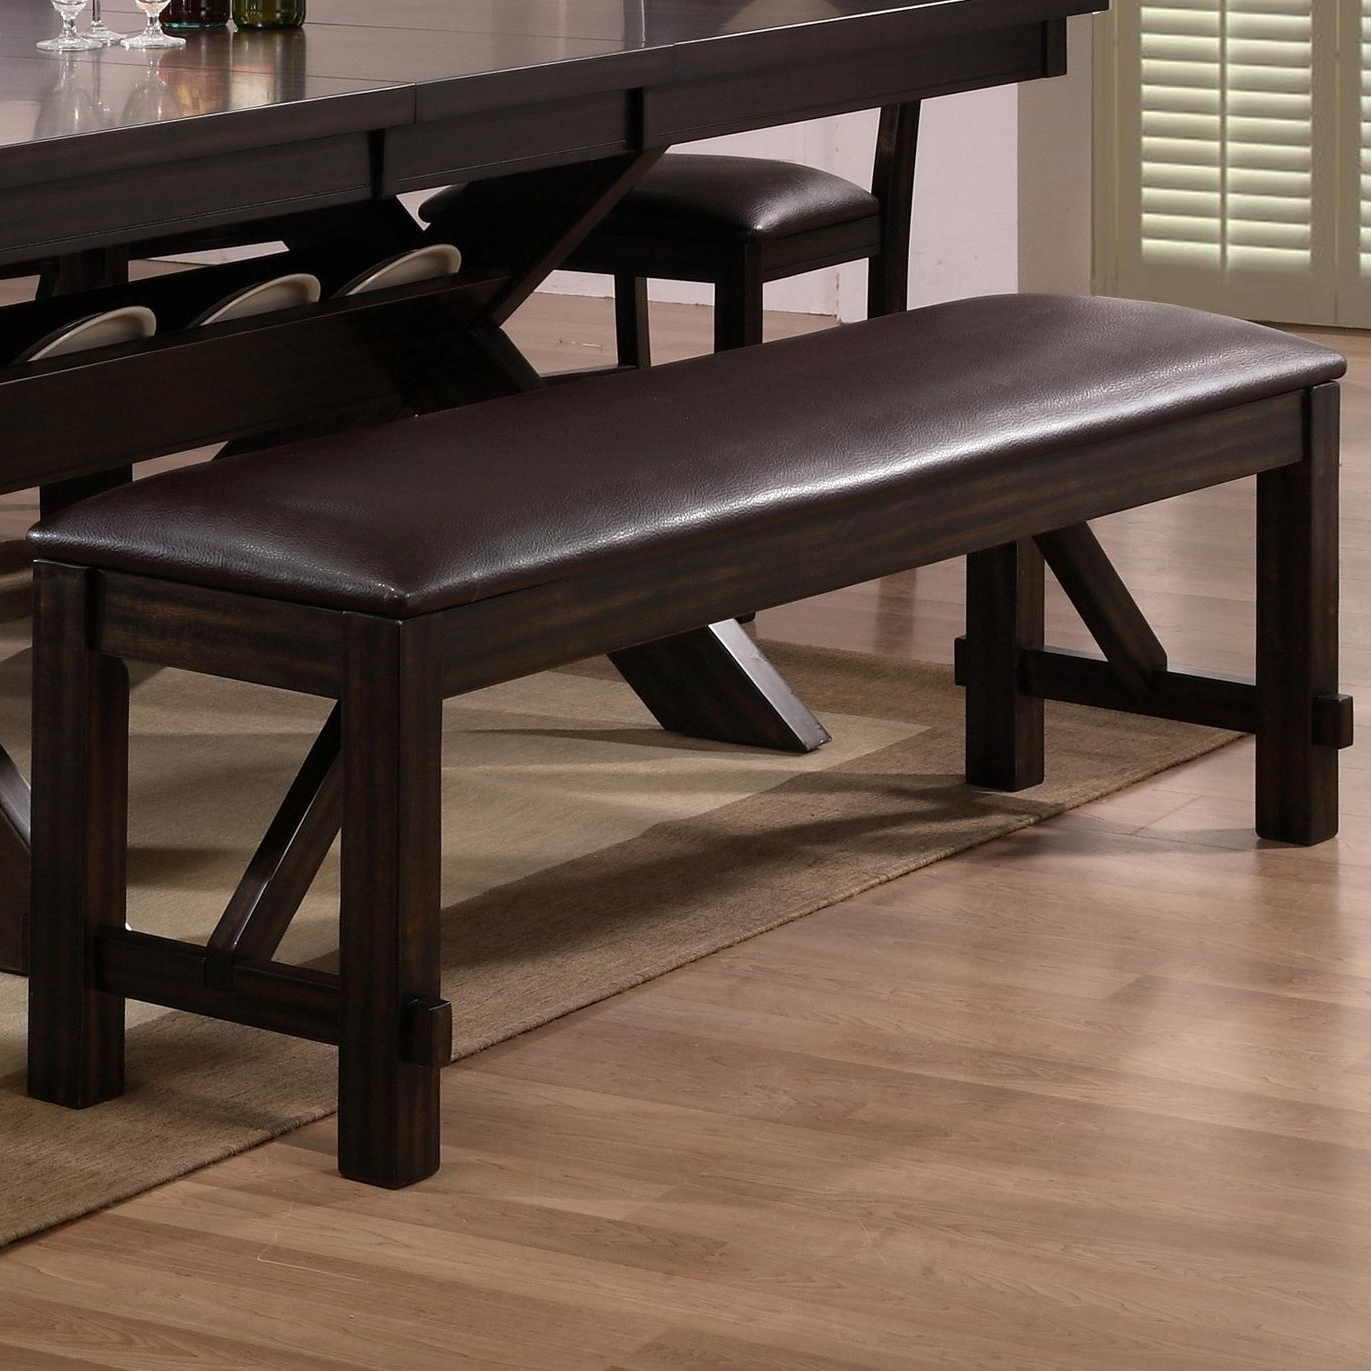 Havana Dining Tables Within Well Known Belfort Essentials Havana Upholstered Dining Bench With Brown Faux (View 13 of 25)